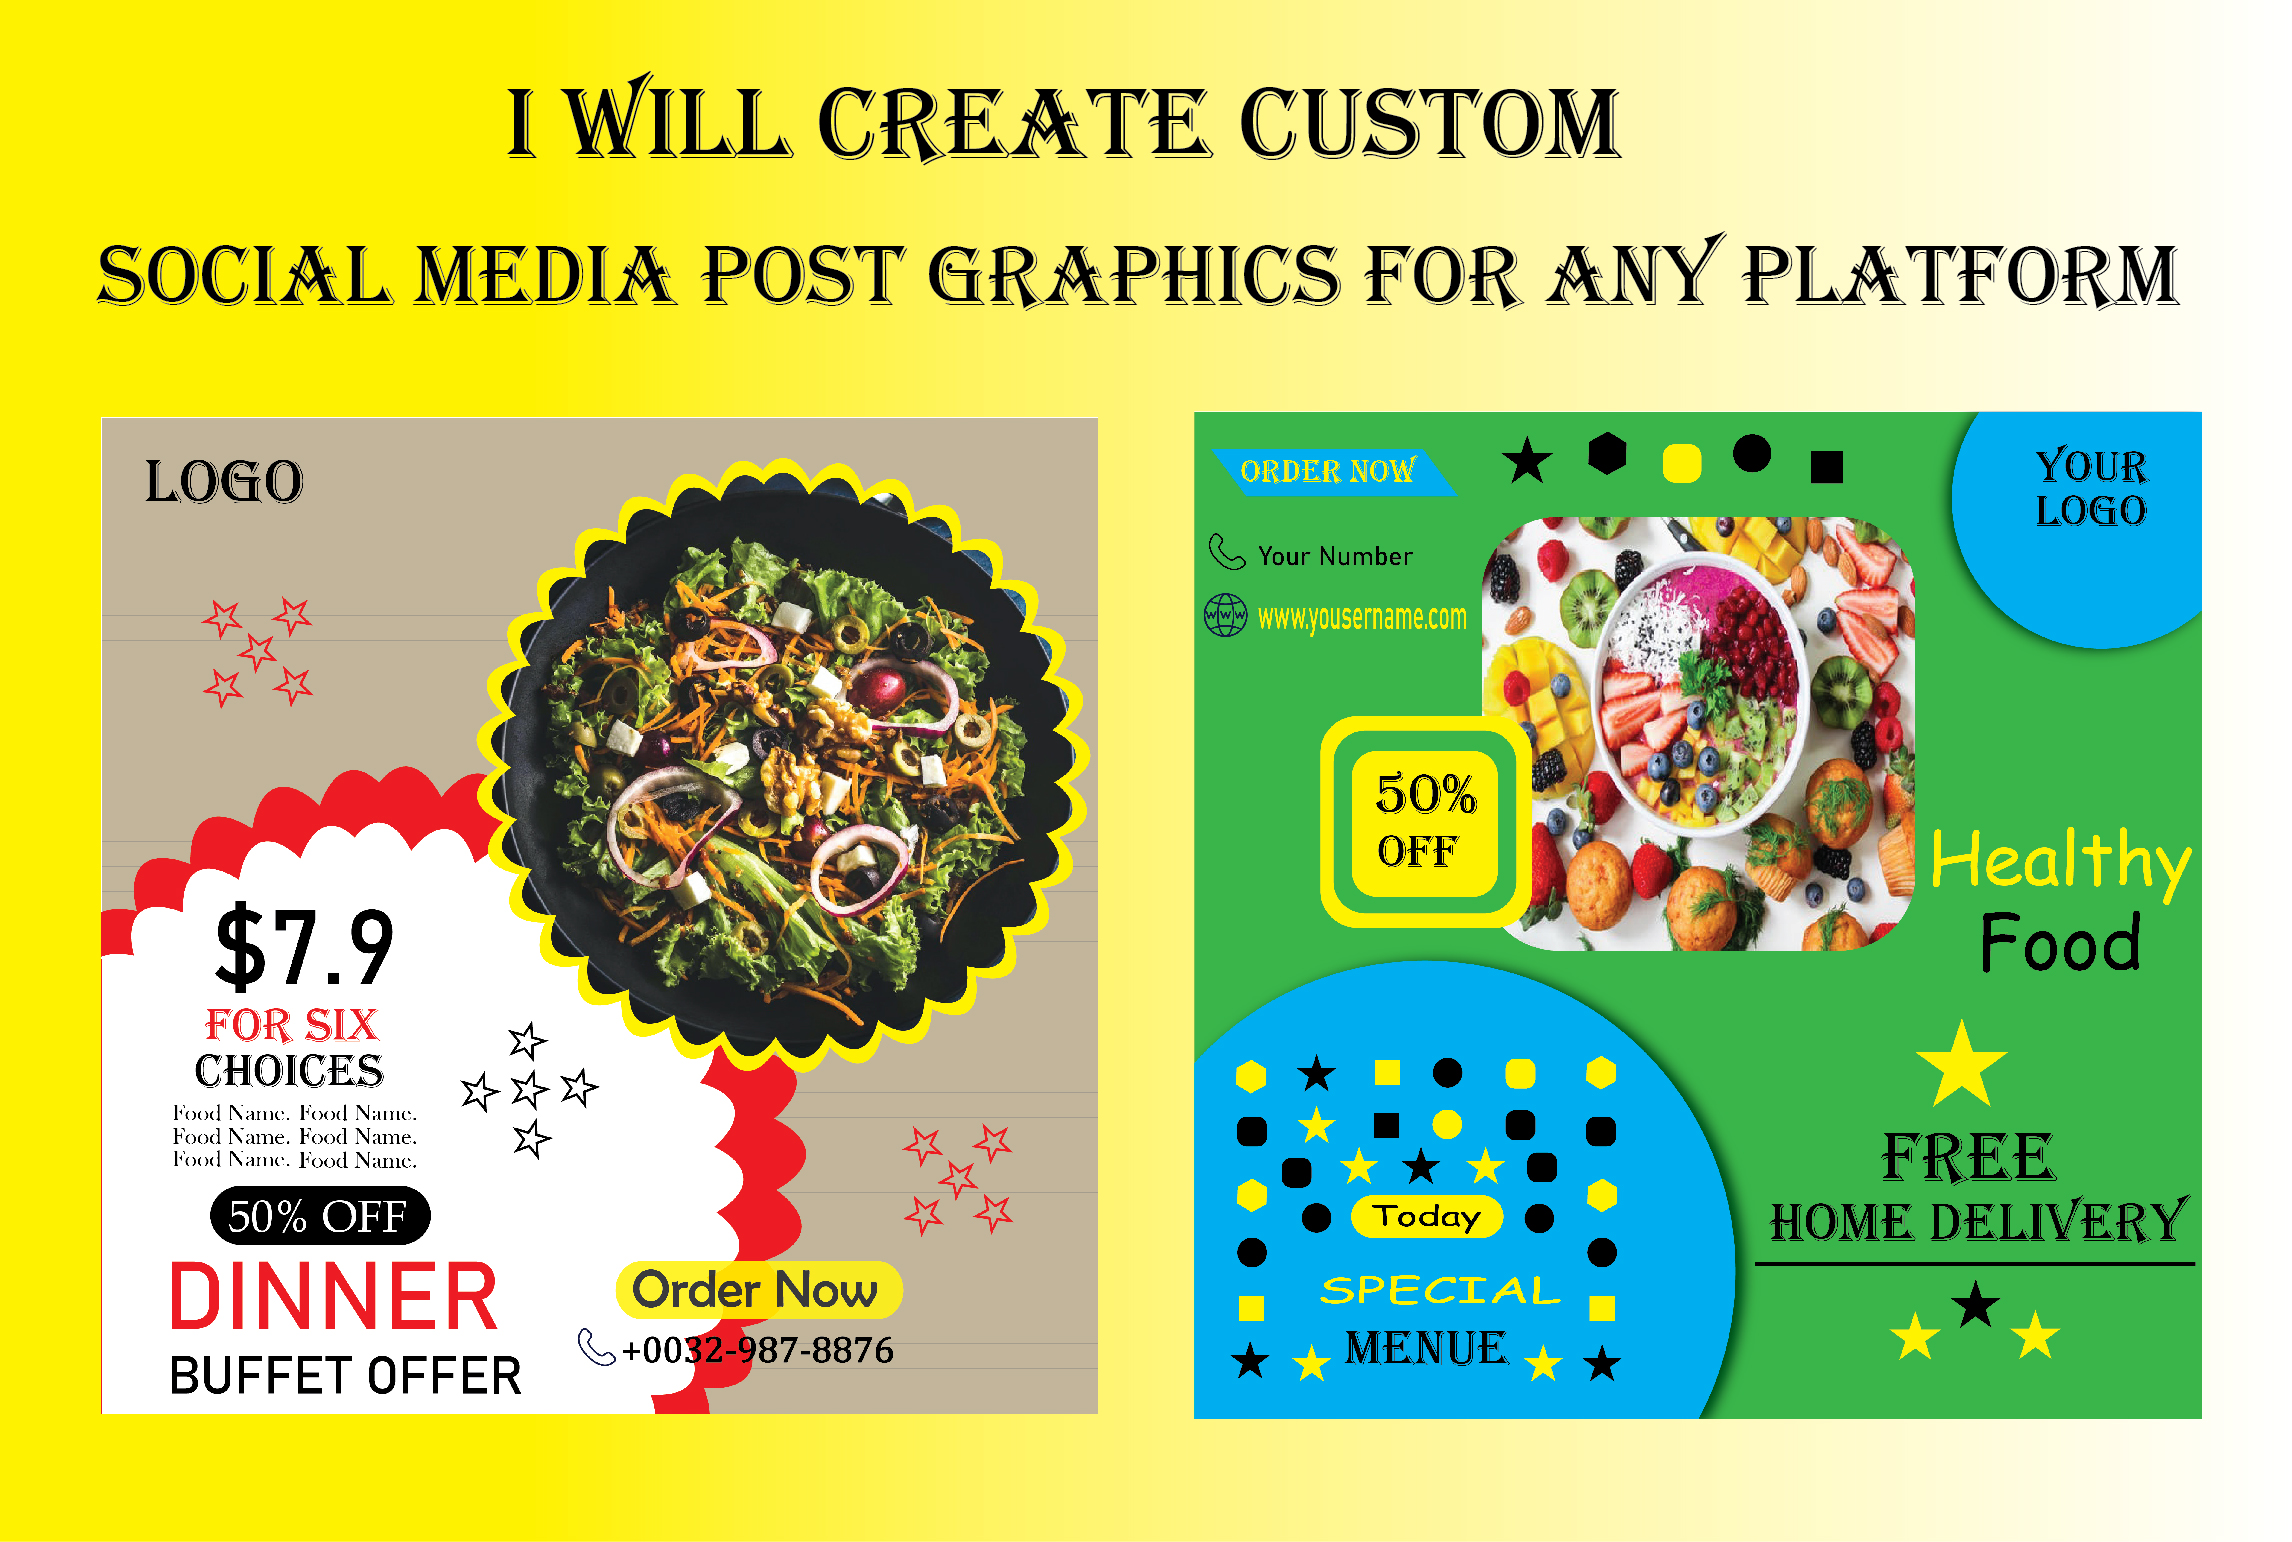 I will create custom social media post graphics for any platform